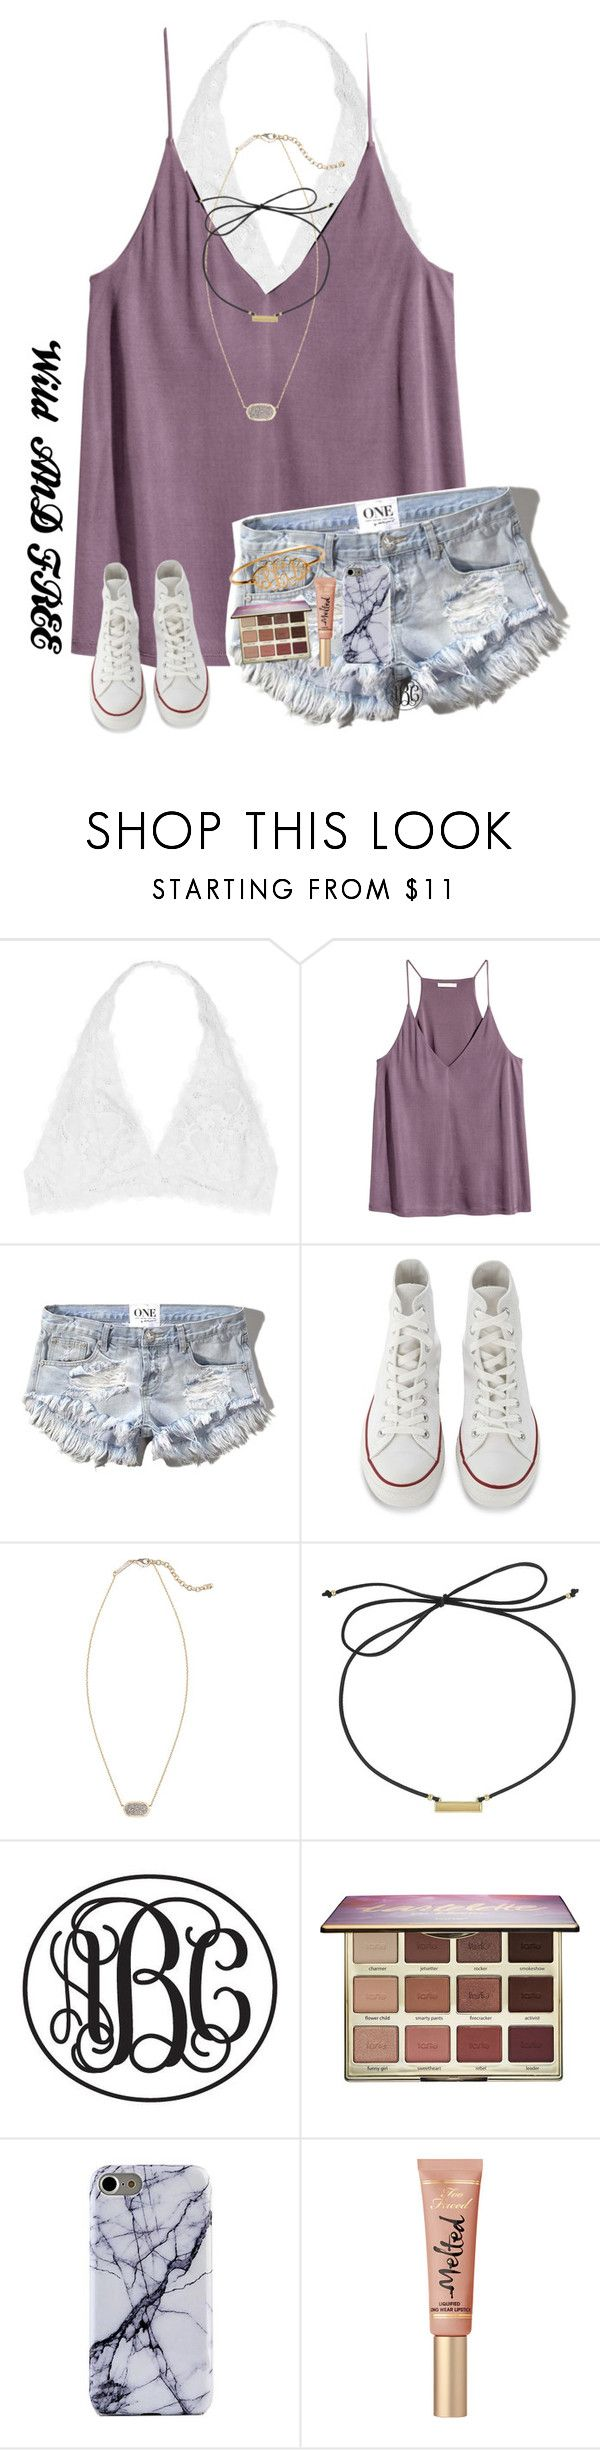 """""""(Wild and Beautiful)"""" by mckenna1 ❤ liked on Polyvore featuring Youmita, Abercrombie & Fitch, Converse, Kendra Scott, Laundry by Shelli Segal and tarte"""